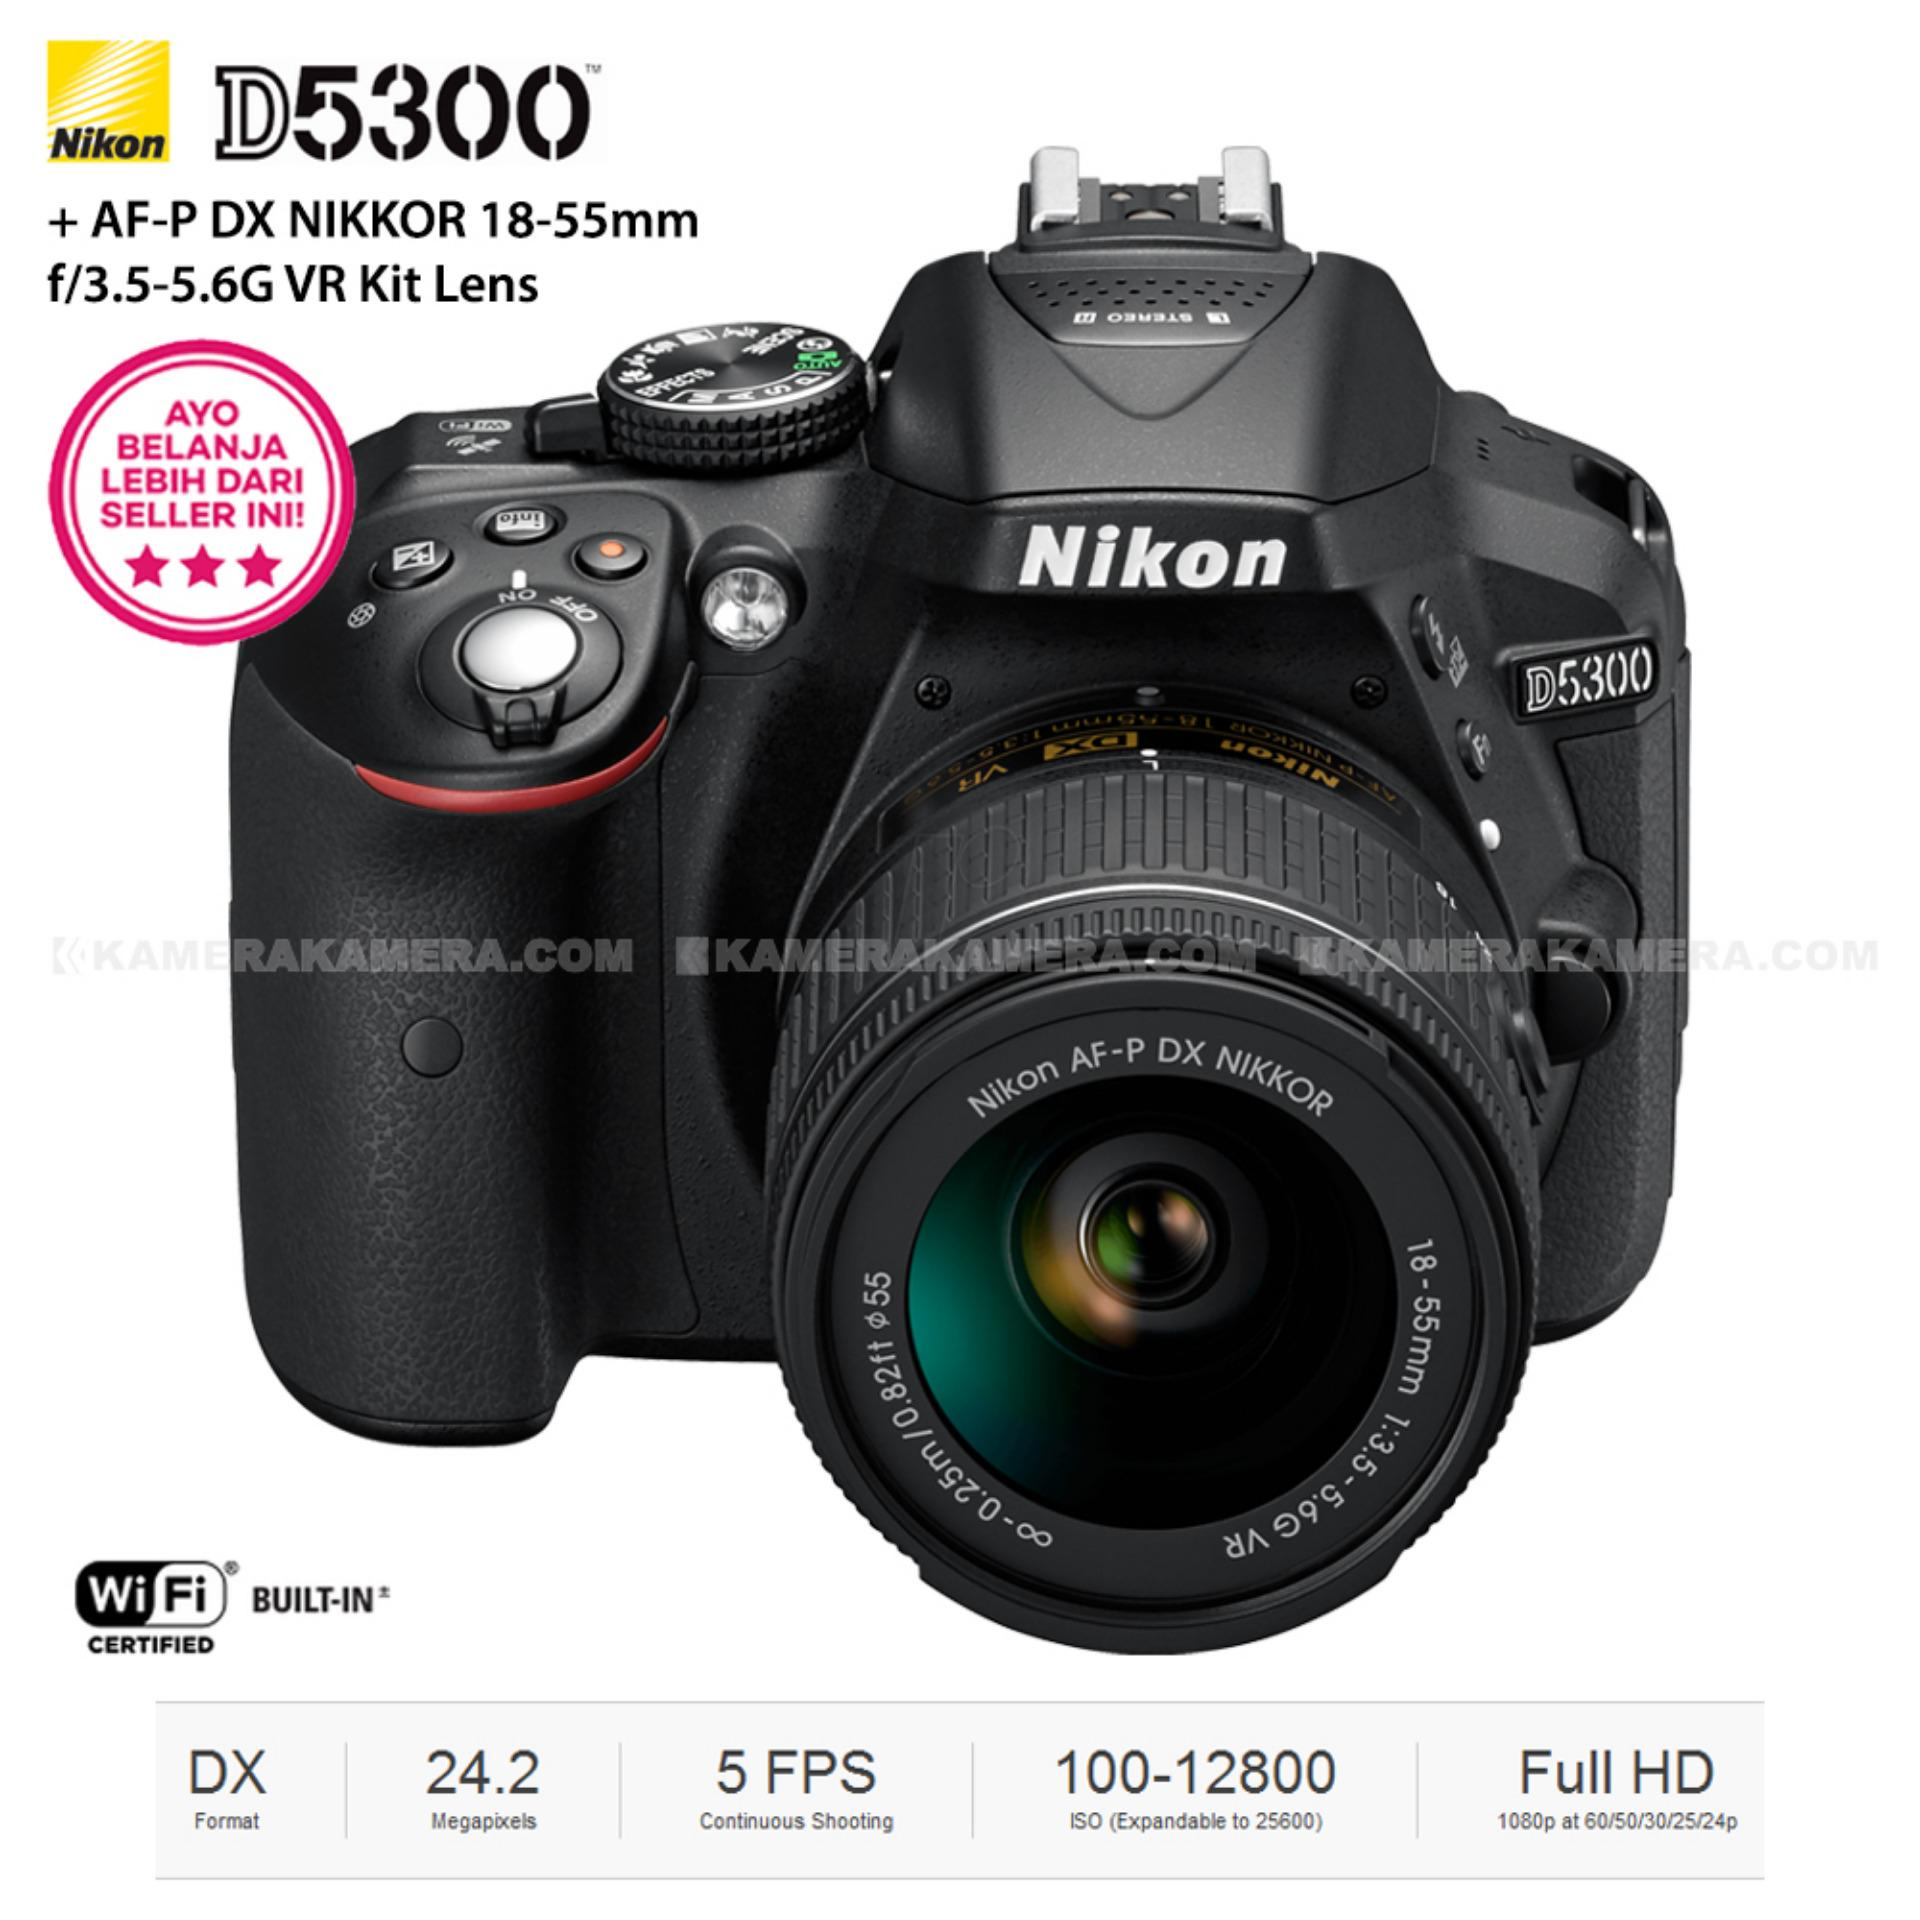 Harga Termurah Nikon D5300 Af P Dx Nikkor 18 55Mm F 3 5 5 6G Vr Kit 24 2Mp Black